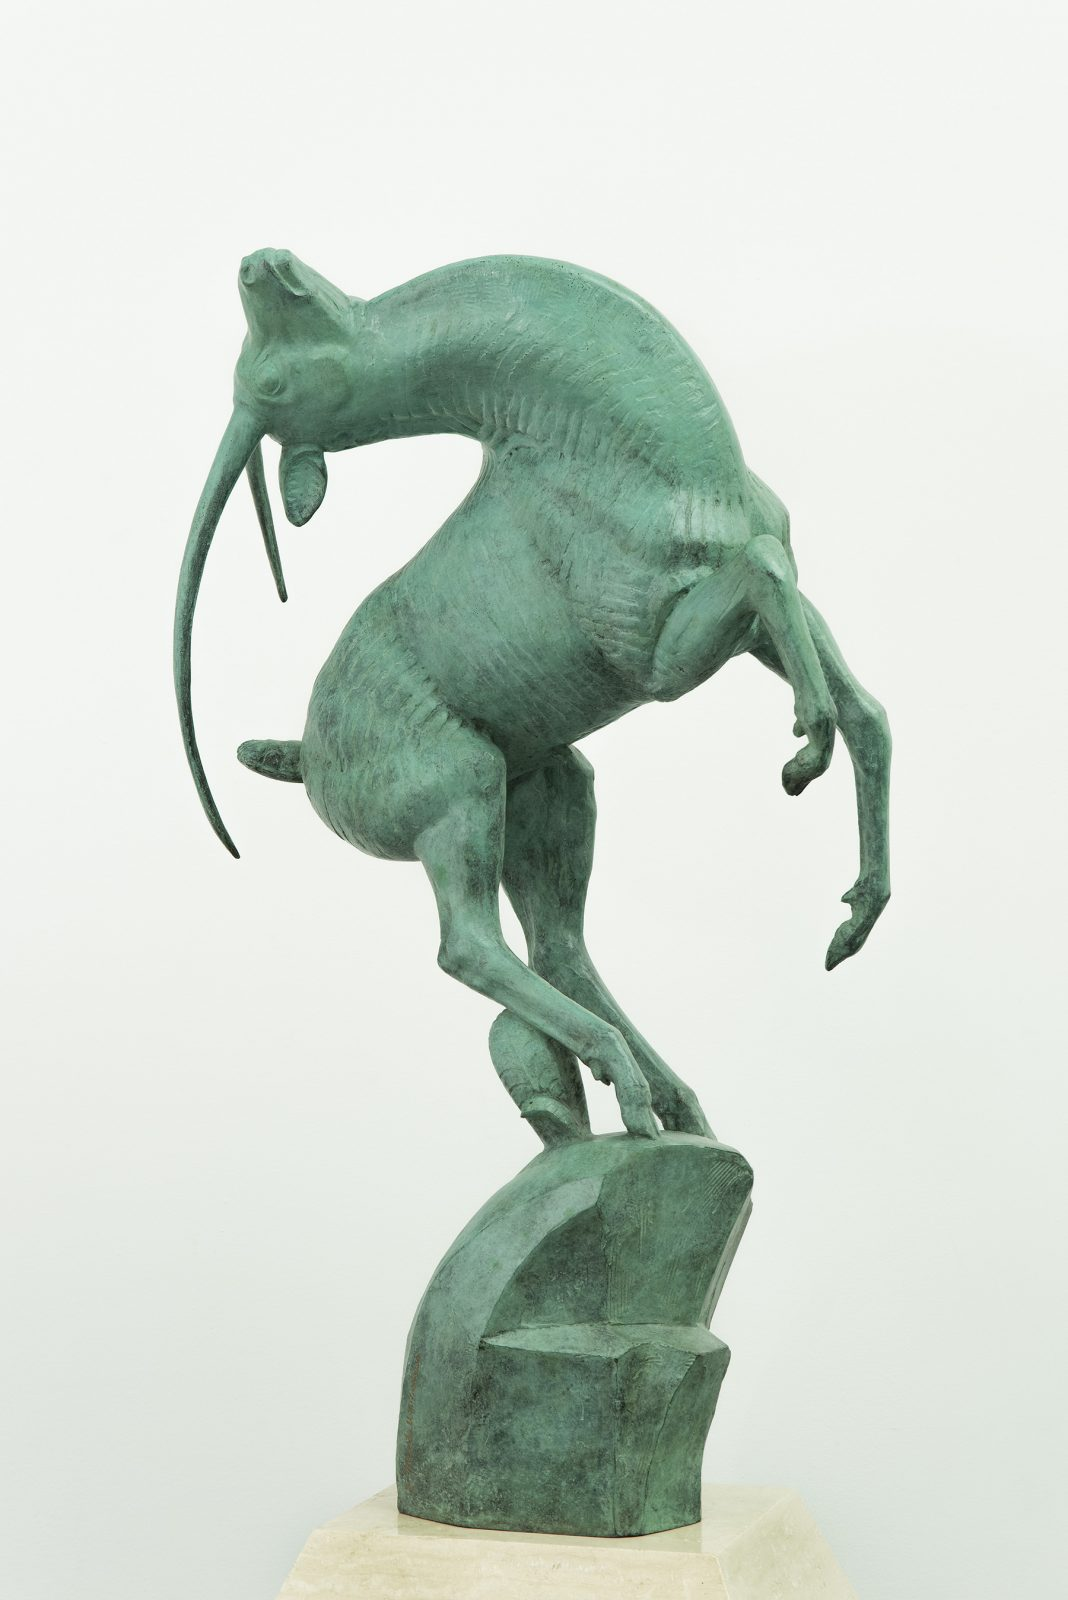 Bronze sculpture showing a leaping gazelle